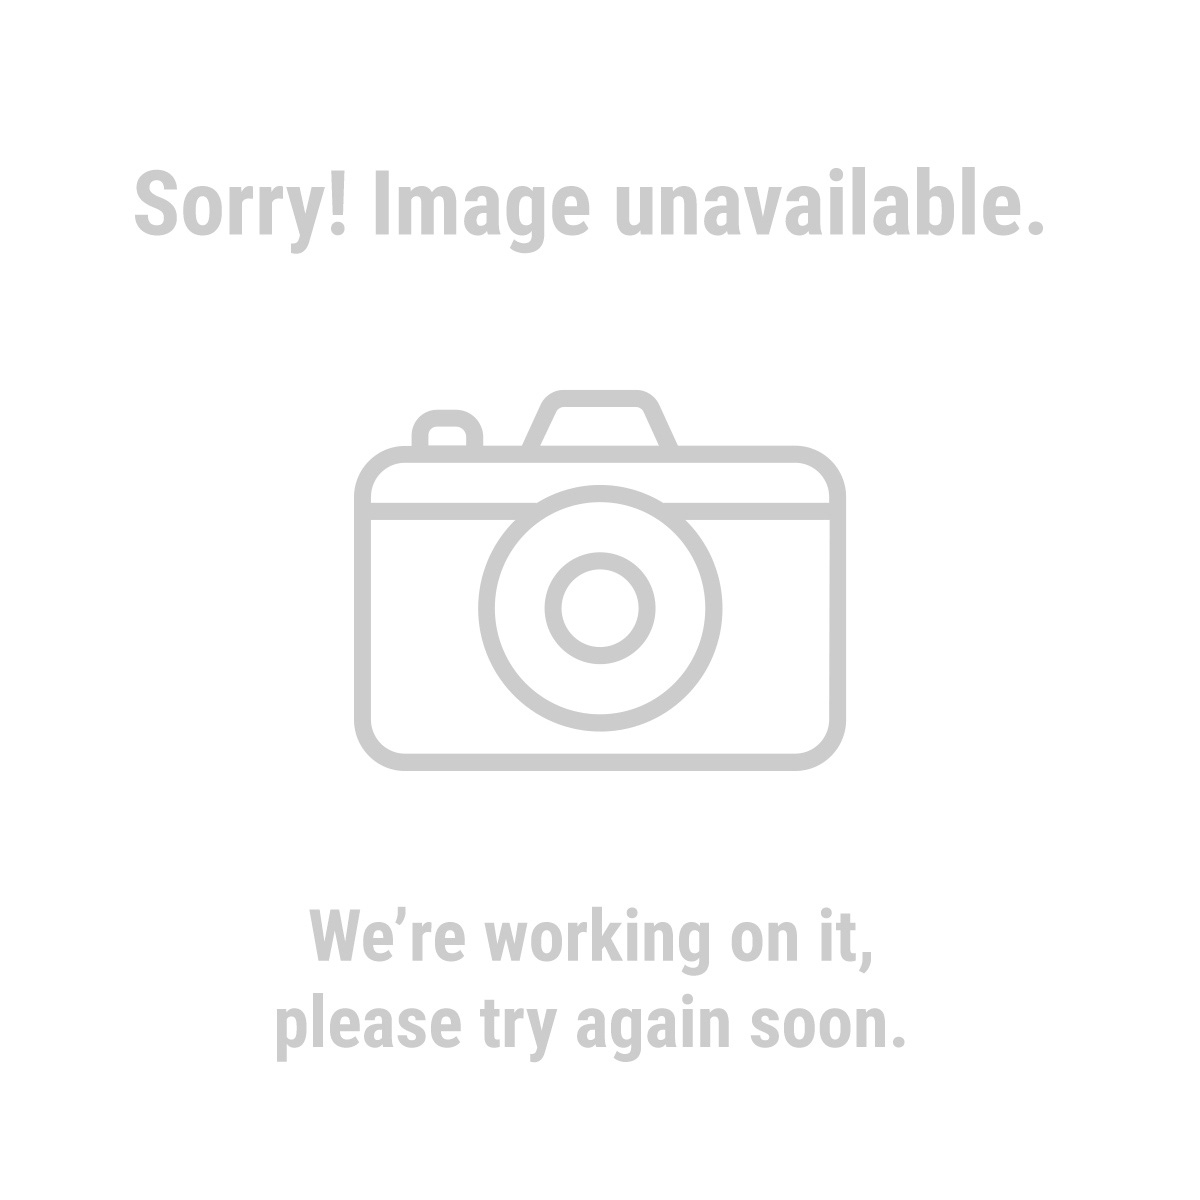 "Haul Master Shop 47262 40"" x 72"" Mover's Blanket"